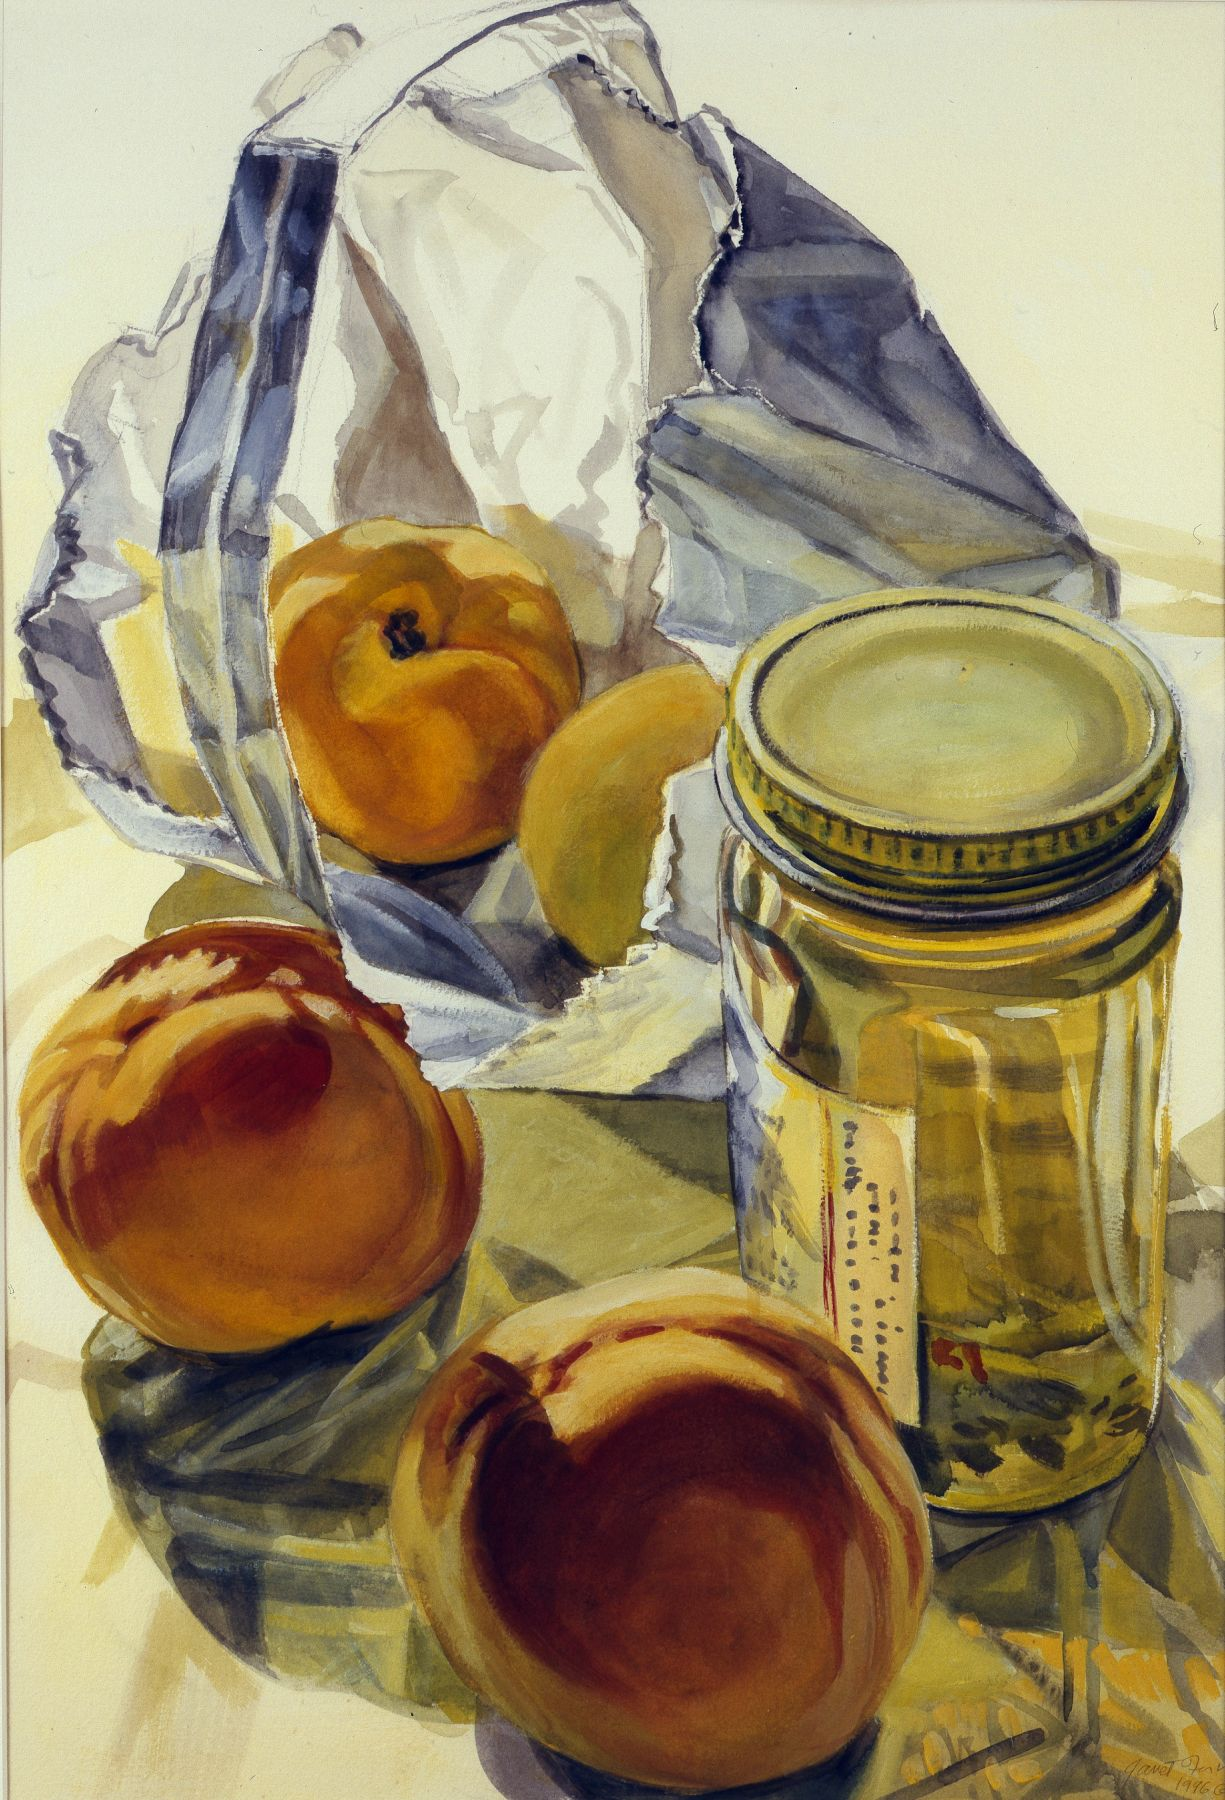 Bag, Honey, 1996, Watercolor on paper